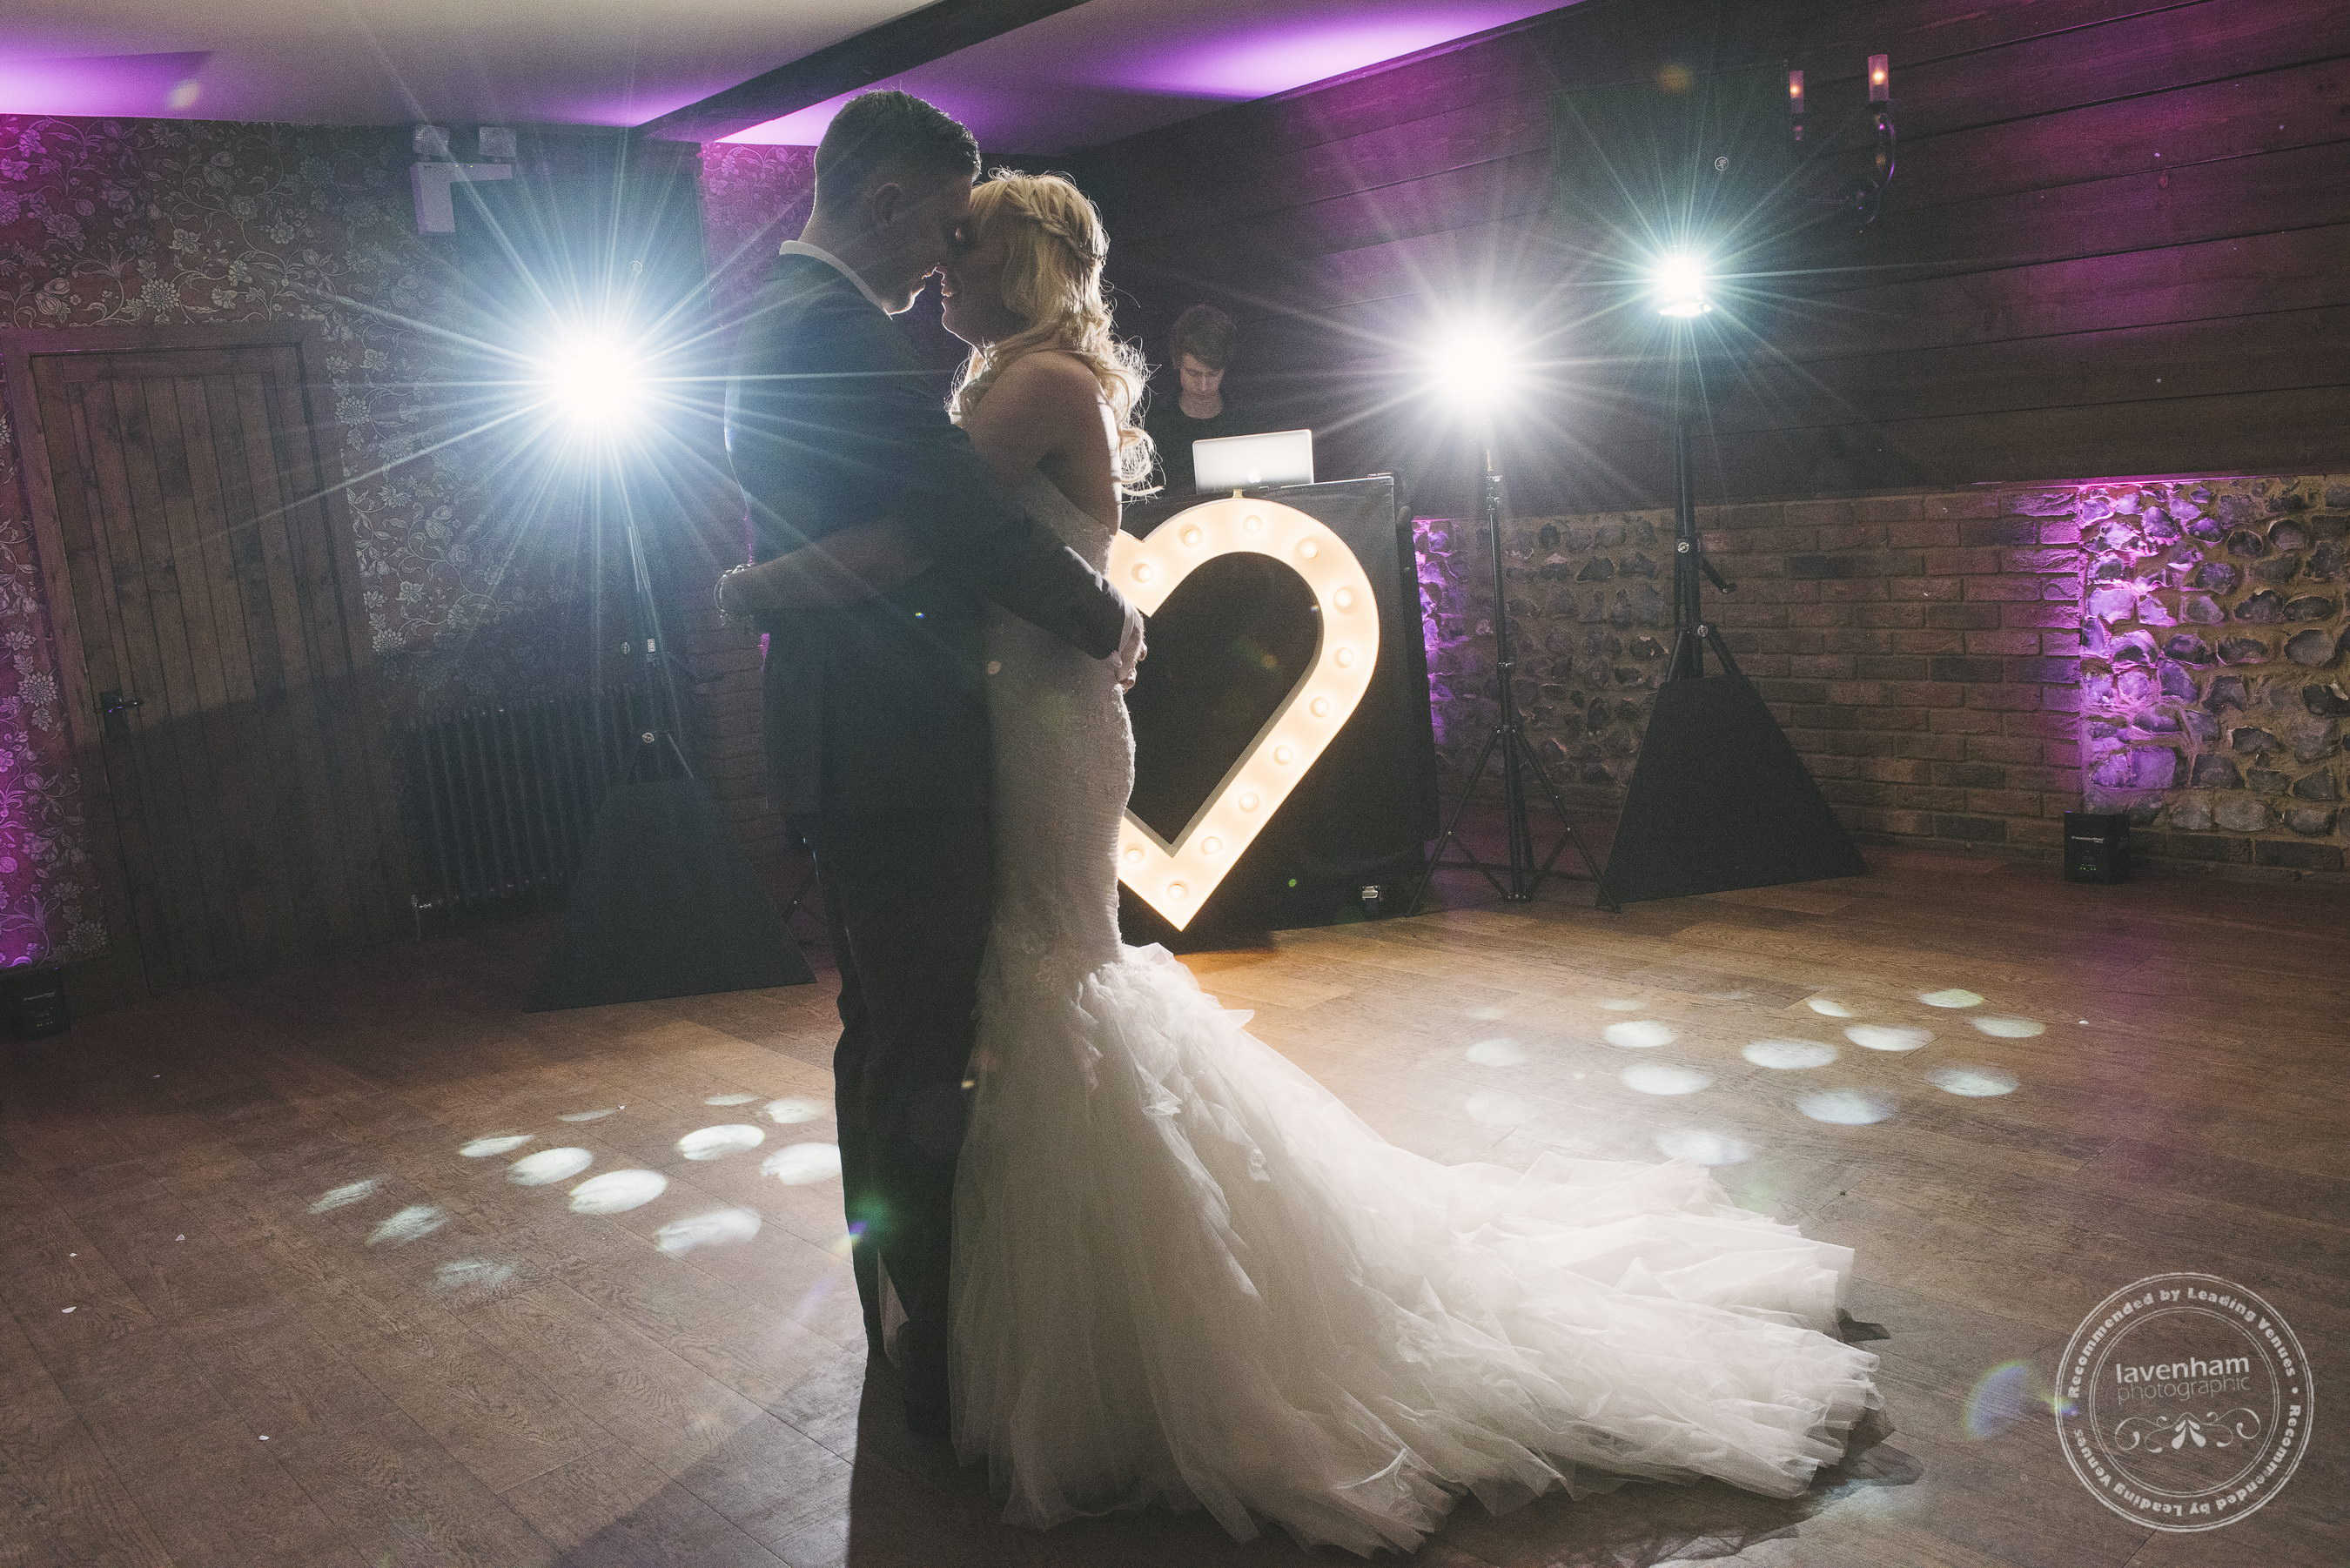 270216 White Hart Yeldham Wedding Photographer 136